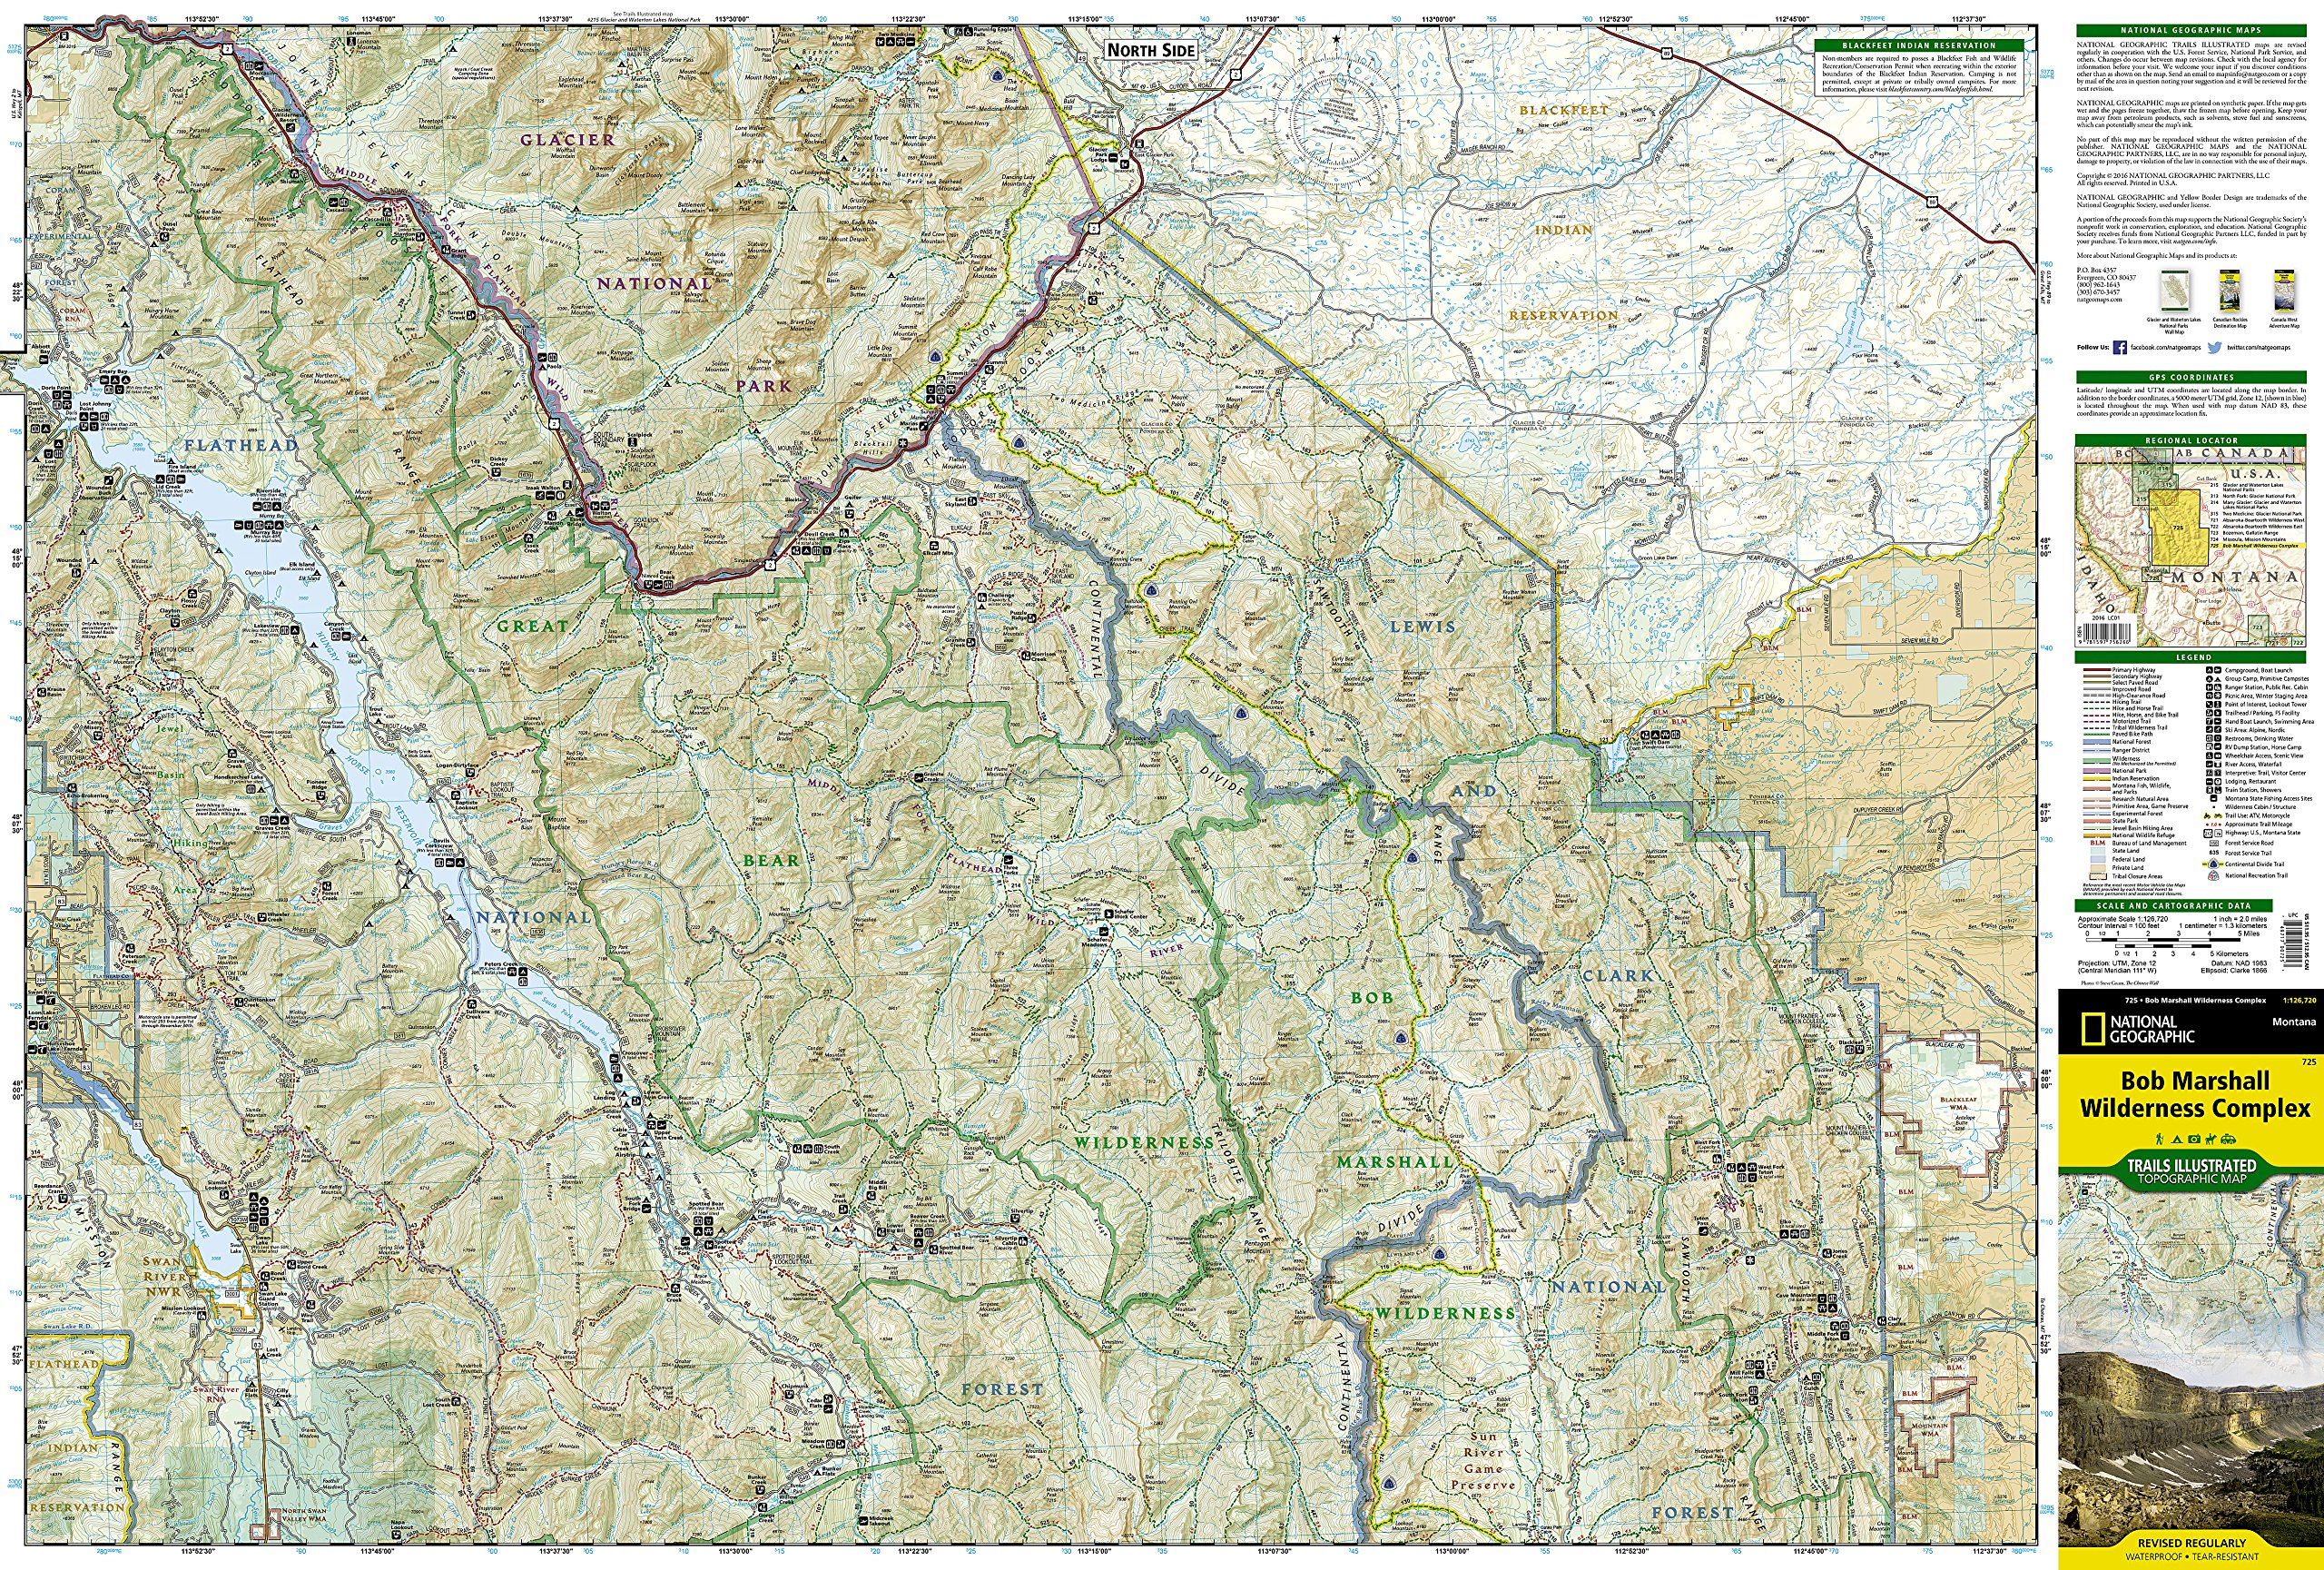 Bob Marshall Wilderness Map Bob Marshall Wilderness (National Geographic Trails Illustrated